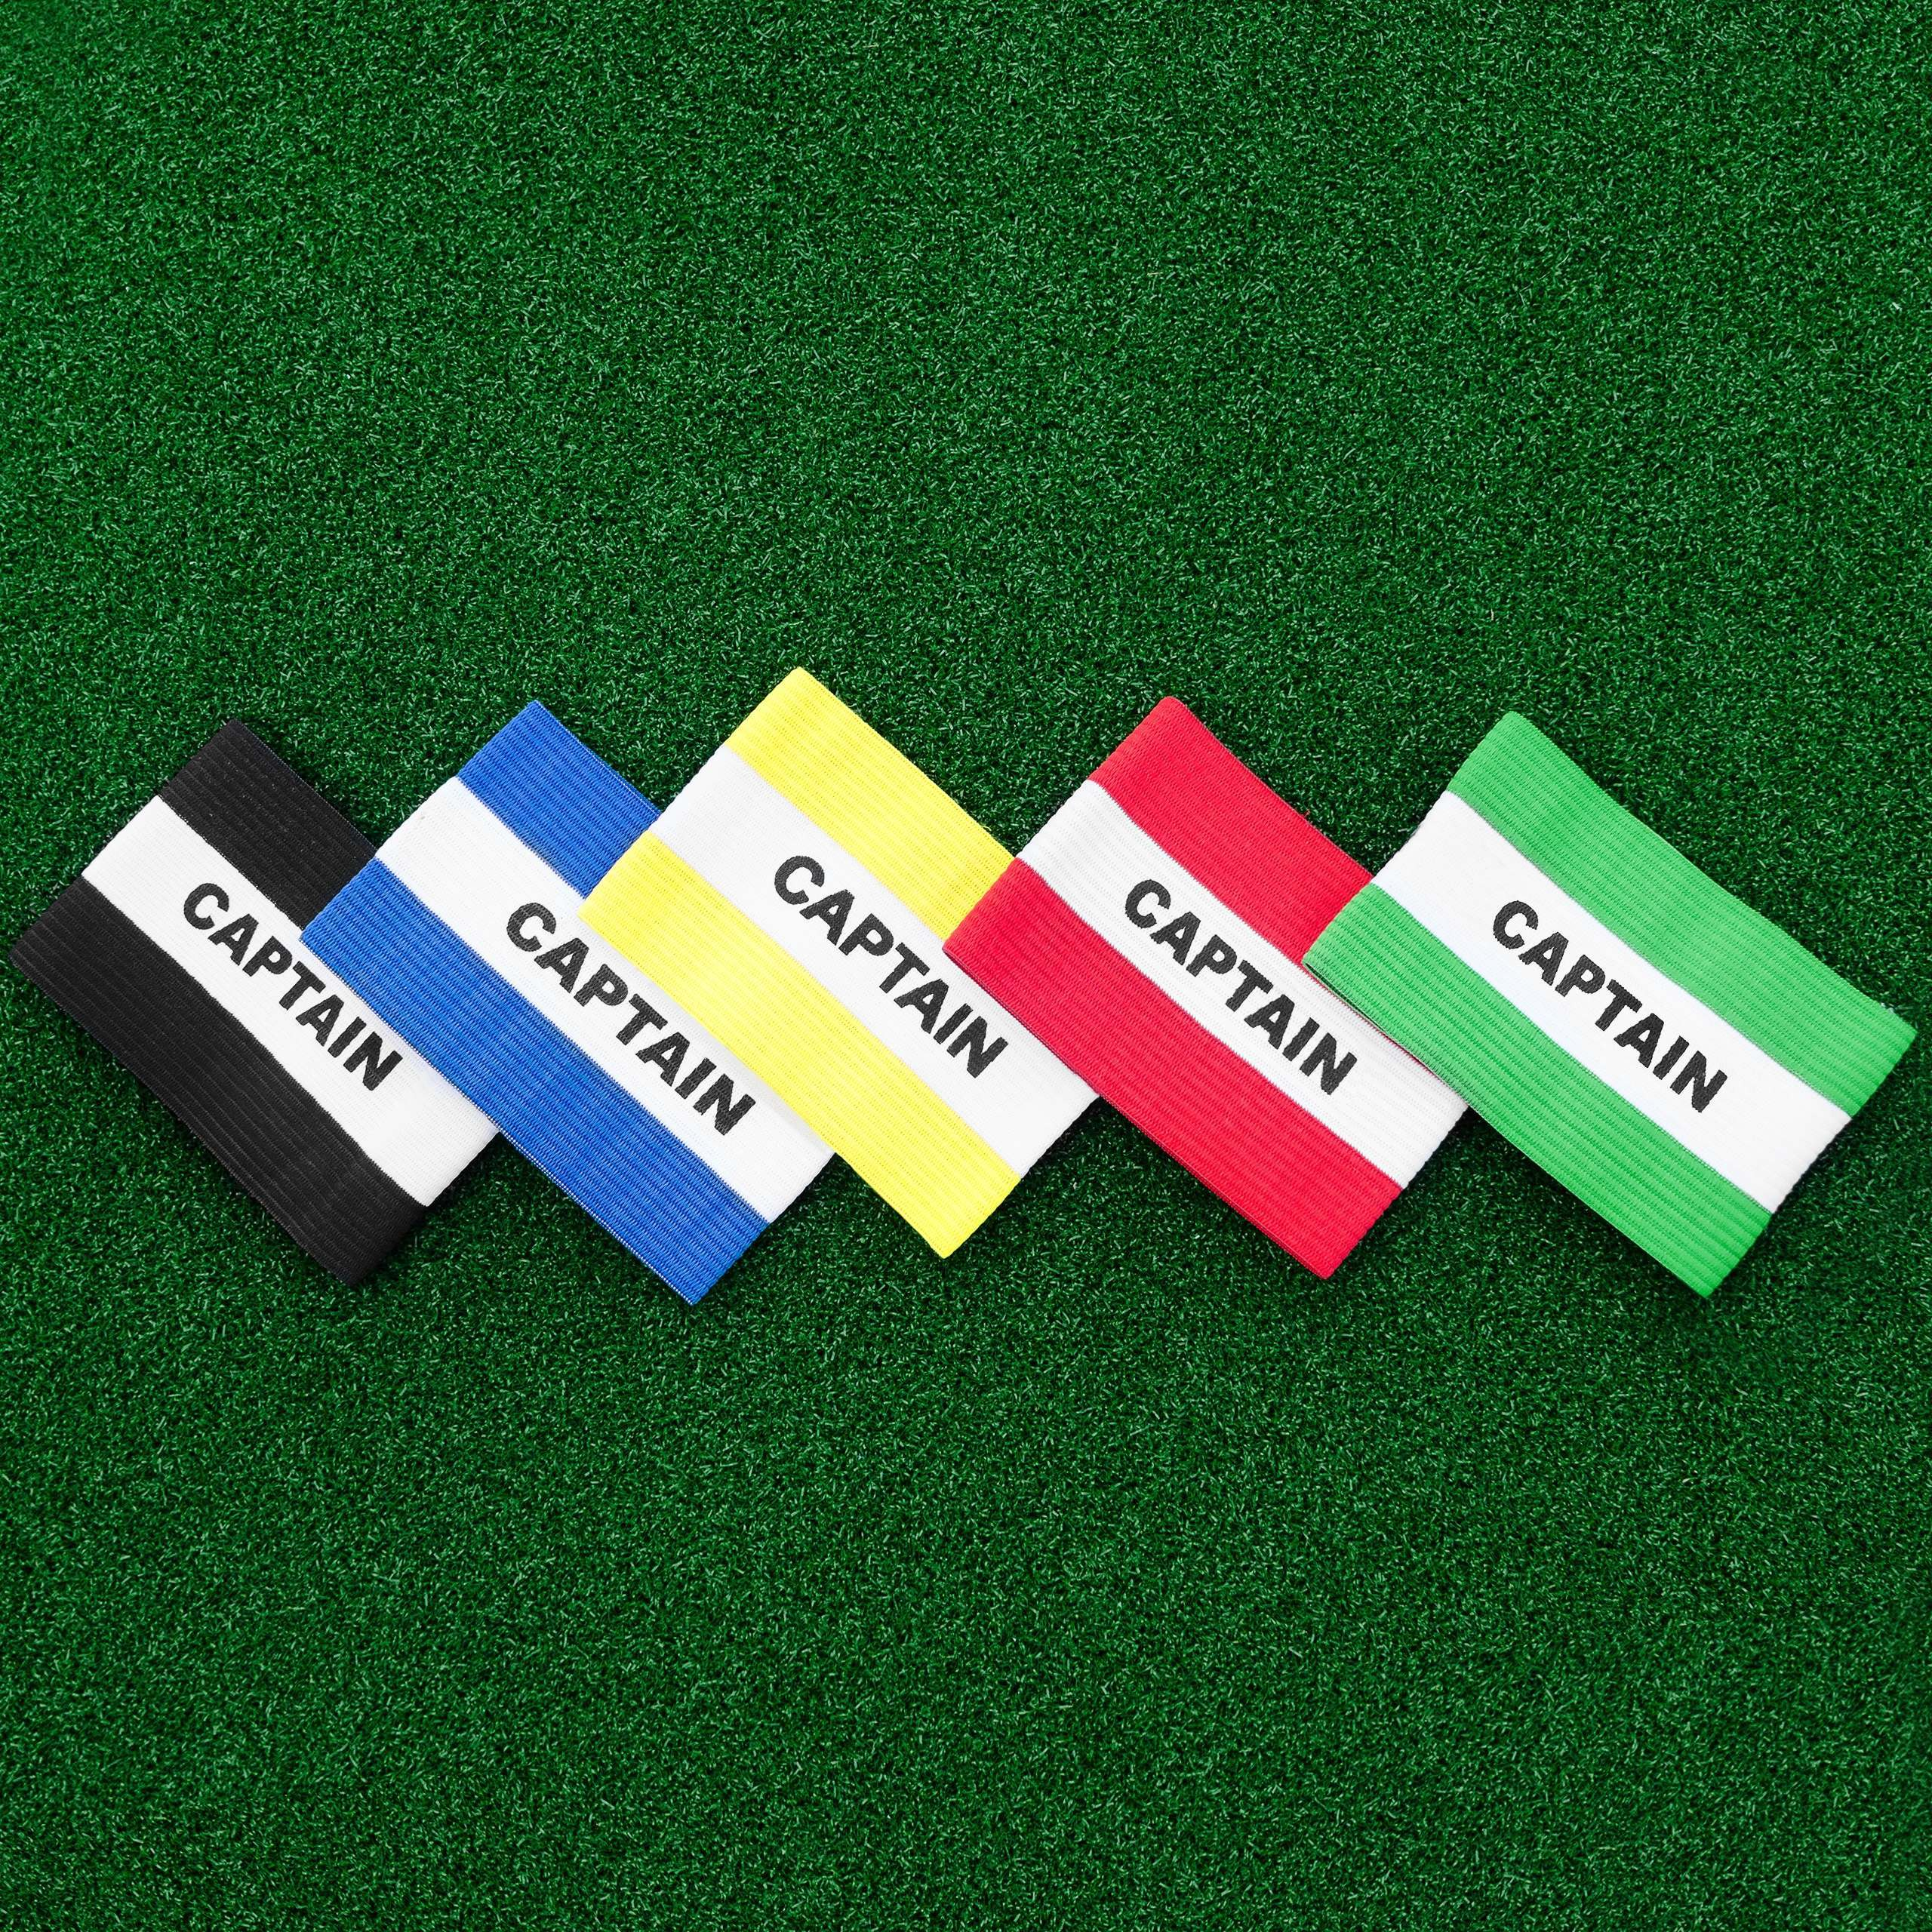 Team Captain's Armbands